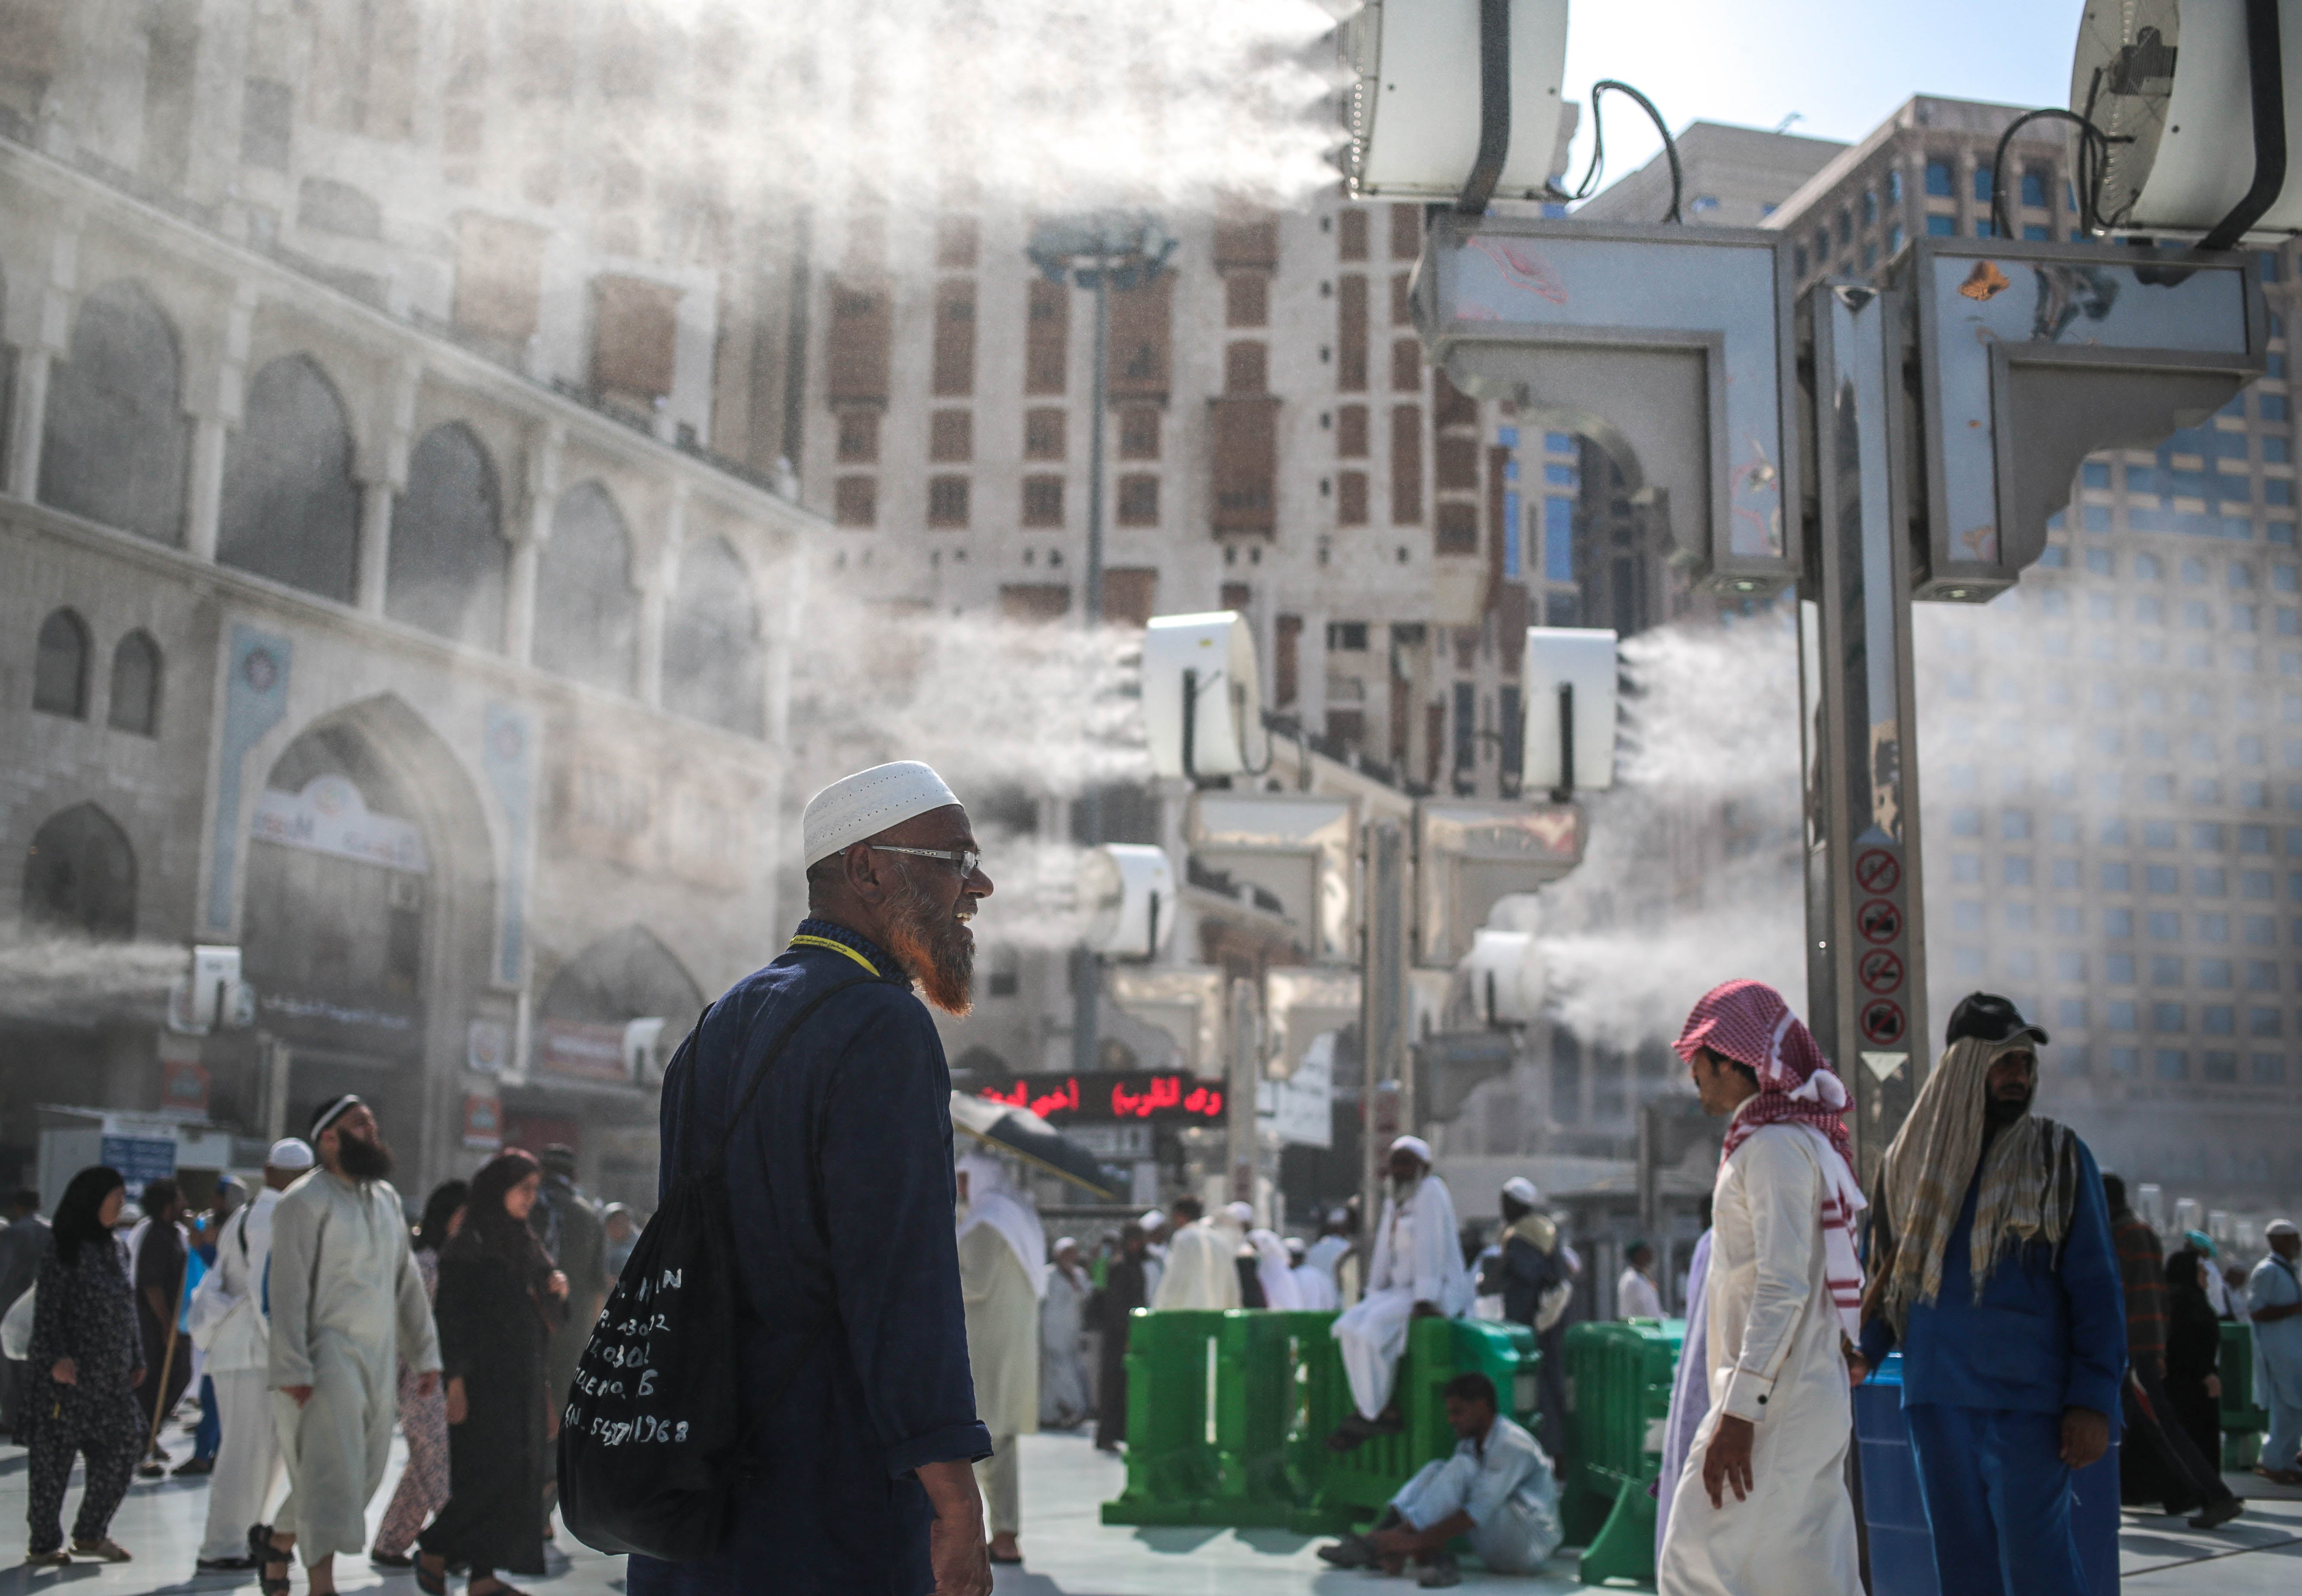 The Middle East Could Become Too Hot For Human Life Within the Next Century